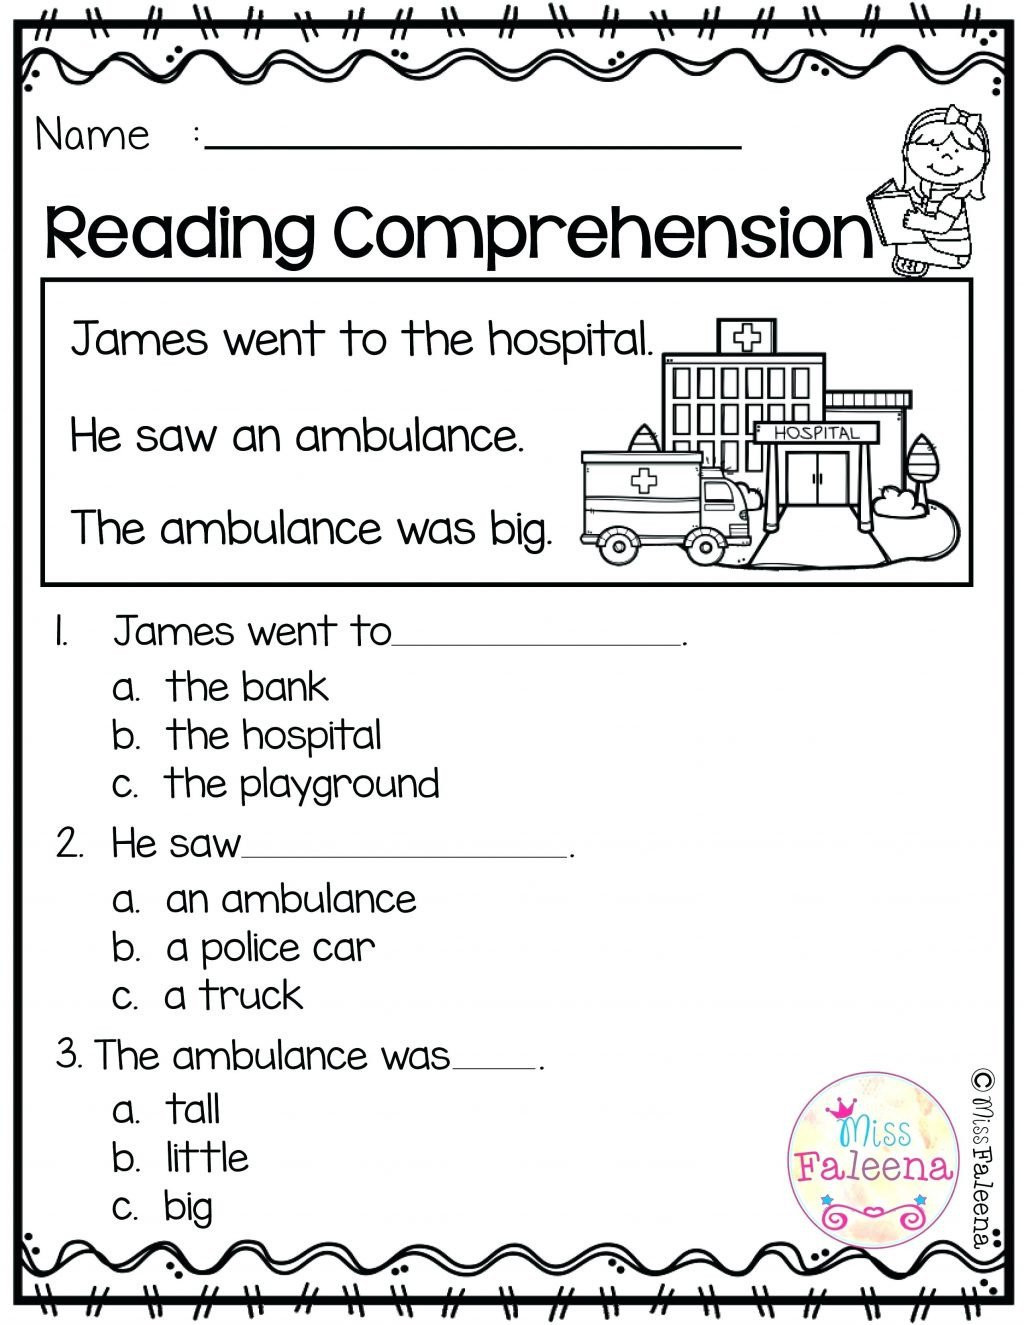 Pictograph Worksheets 2nd Grade Free Pictograph Worksheets